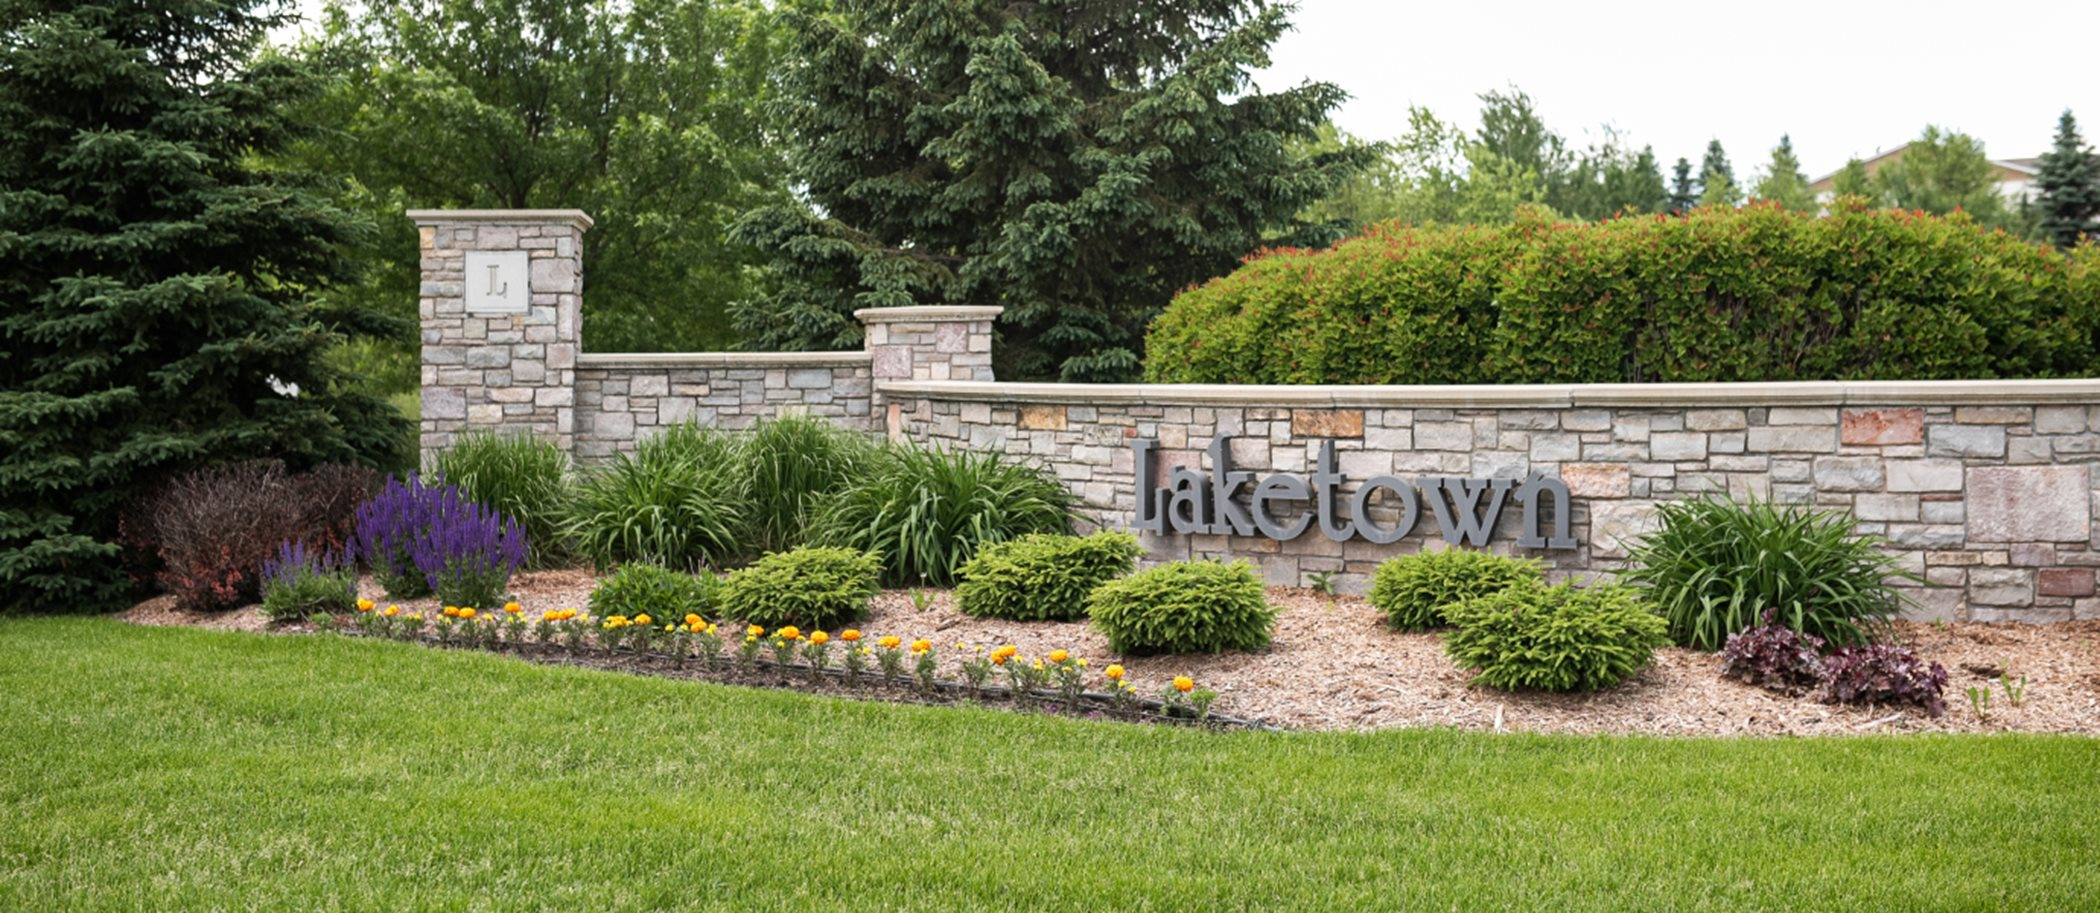 Laketown Colonial Patriot Collection Entrance